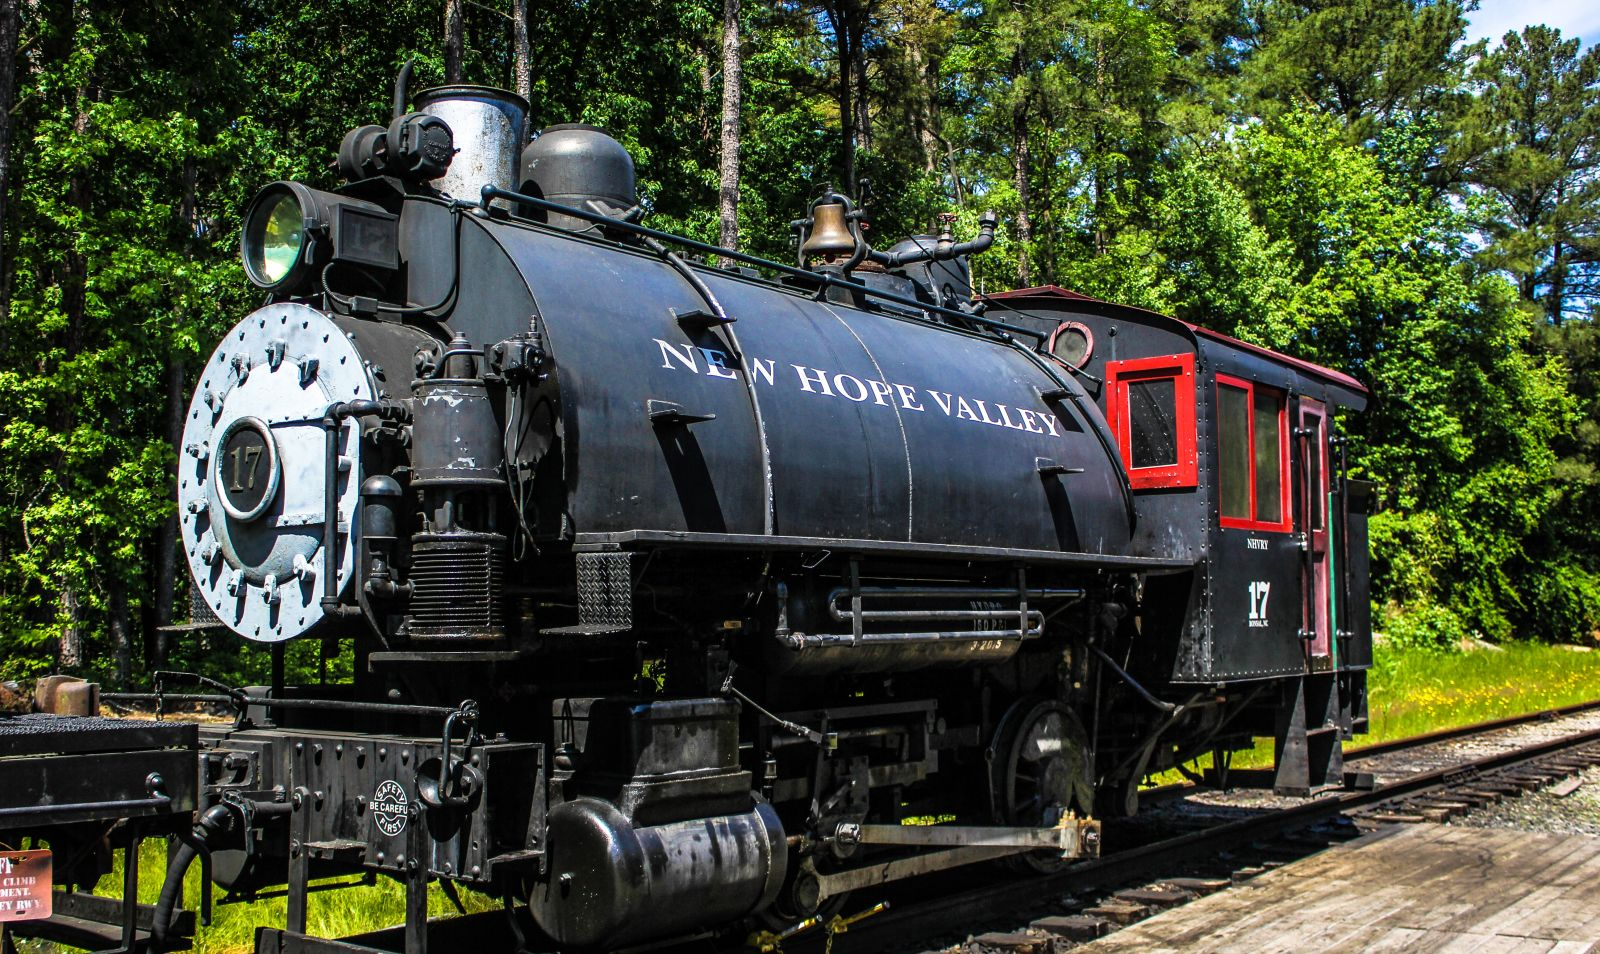 North Carolina Railway Museum & New Hope Valley Railway